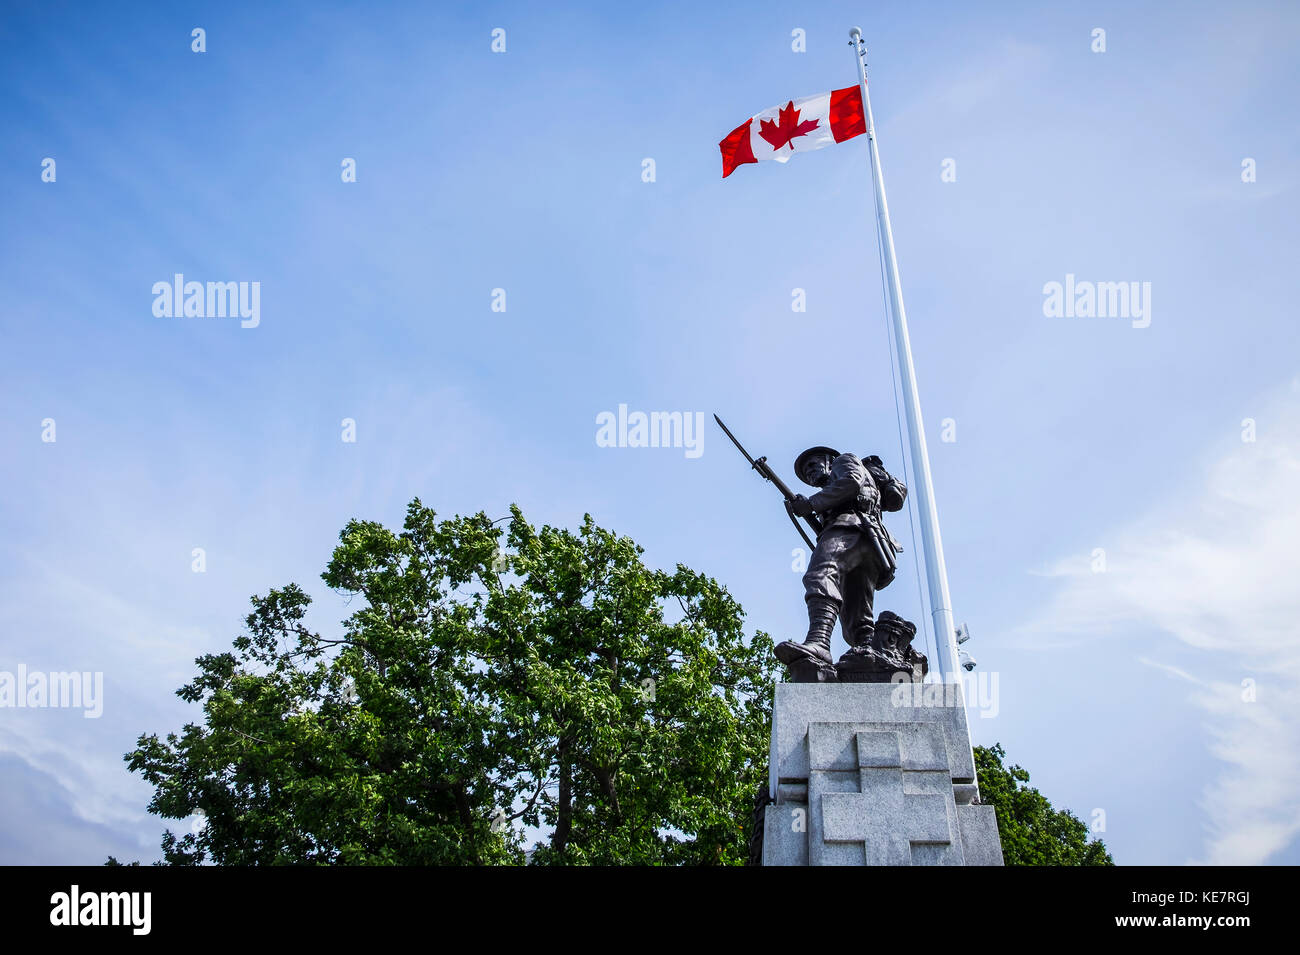 A Statue Of A Soldier Stands On The Victoria Parliament Grounds In Memorium Of Those Who Fell In World War 1, World - Stock Image